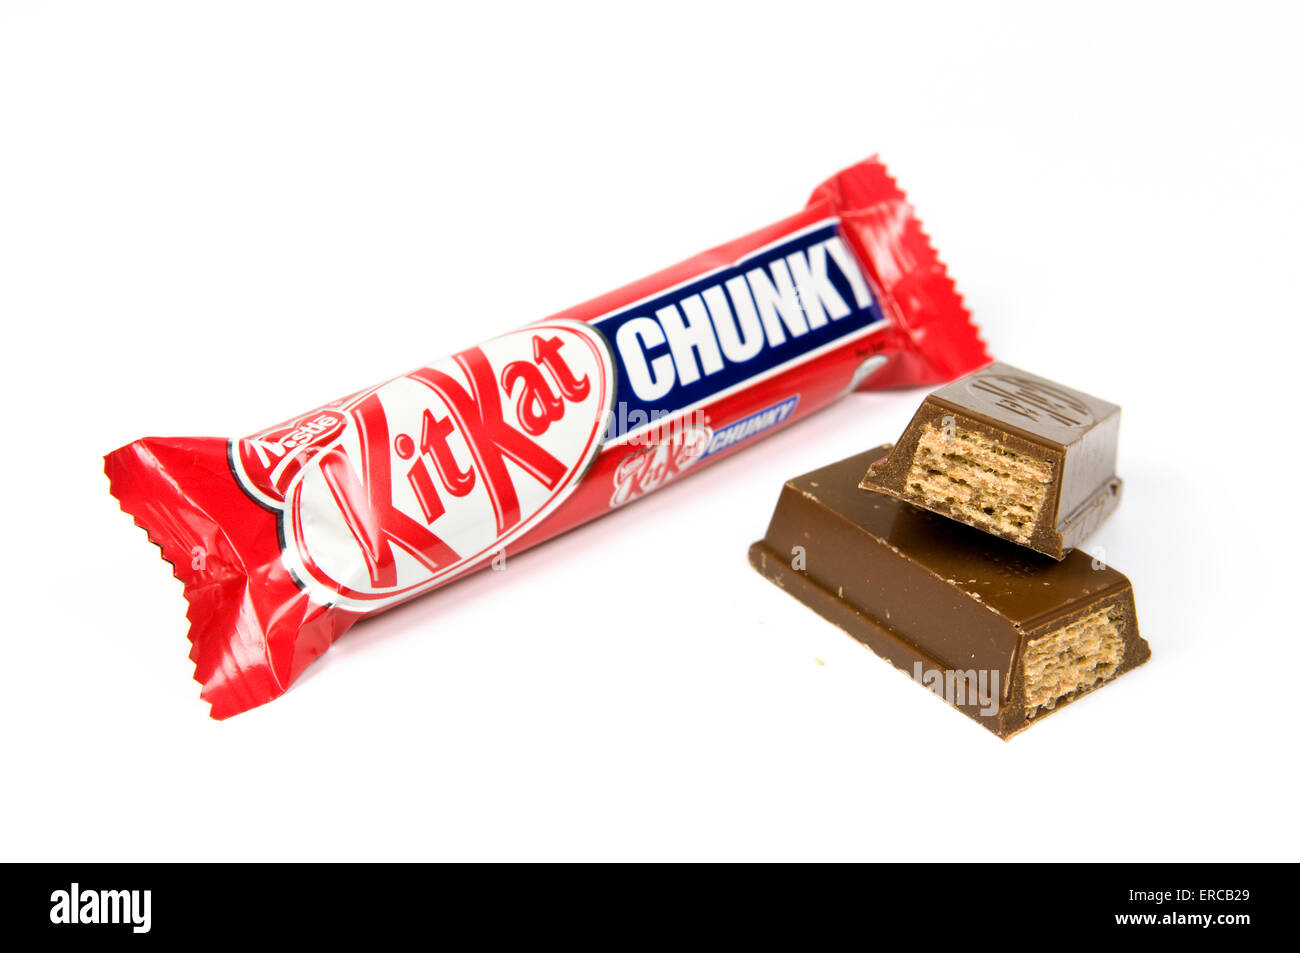 Chunky kitkat bar on white background with open cut up bar by the side - Stock Image